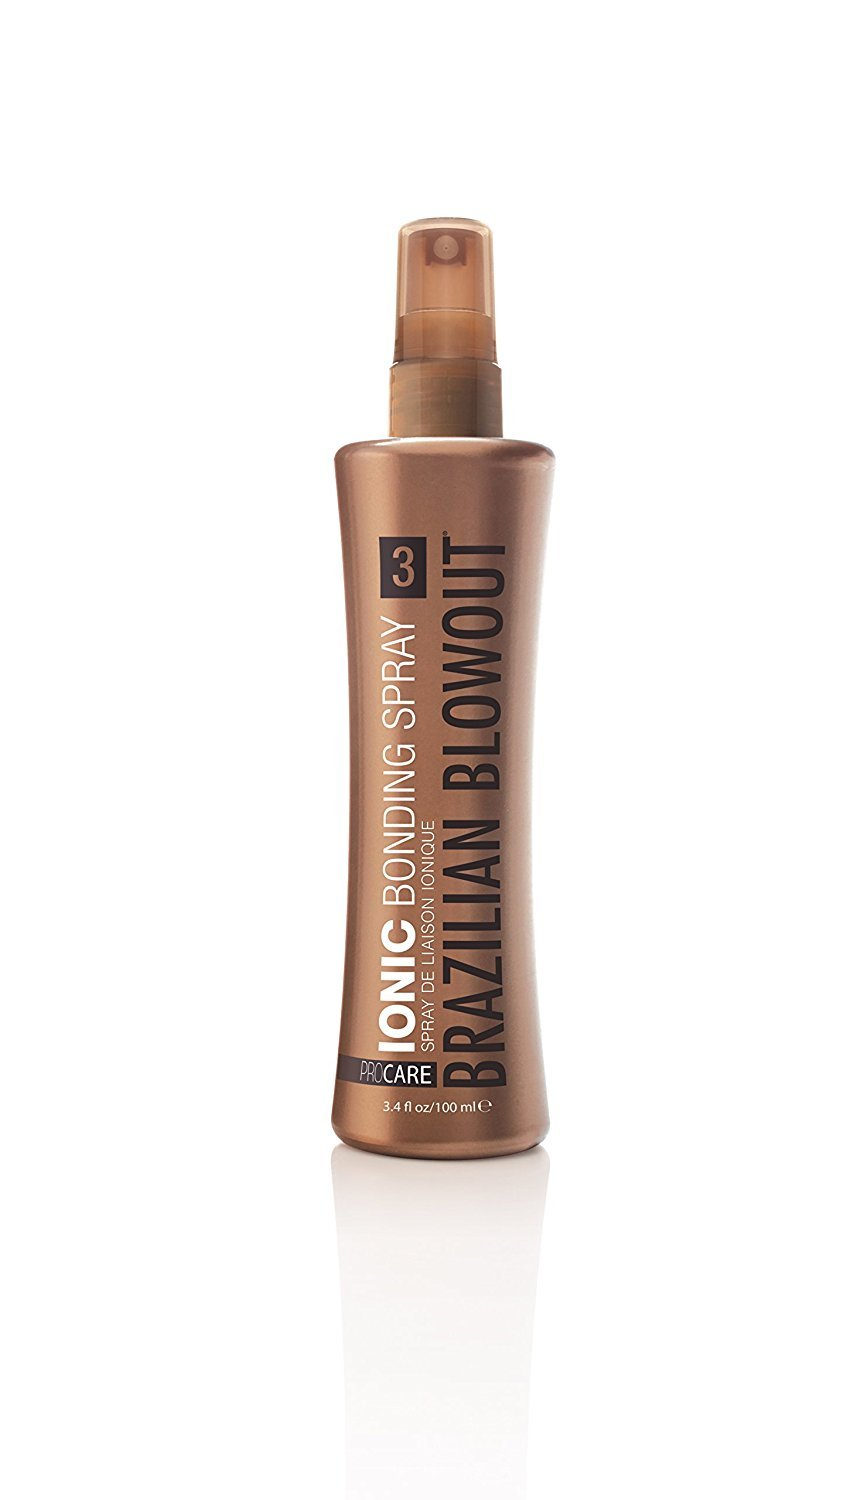 Brazilian Blowout Ionic Bonding Spray Step 3 (3.4oz/100ml)